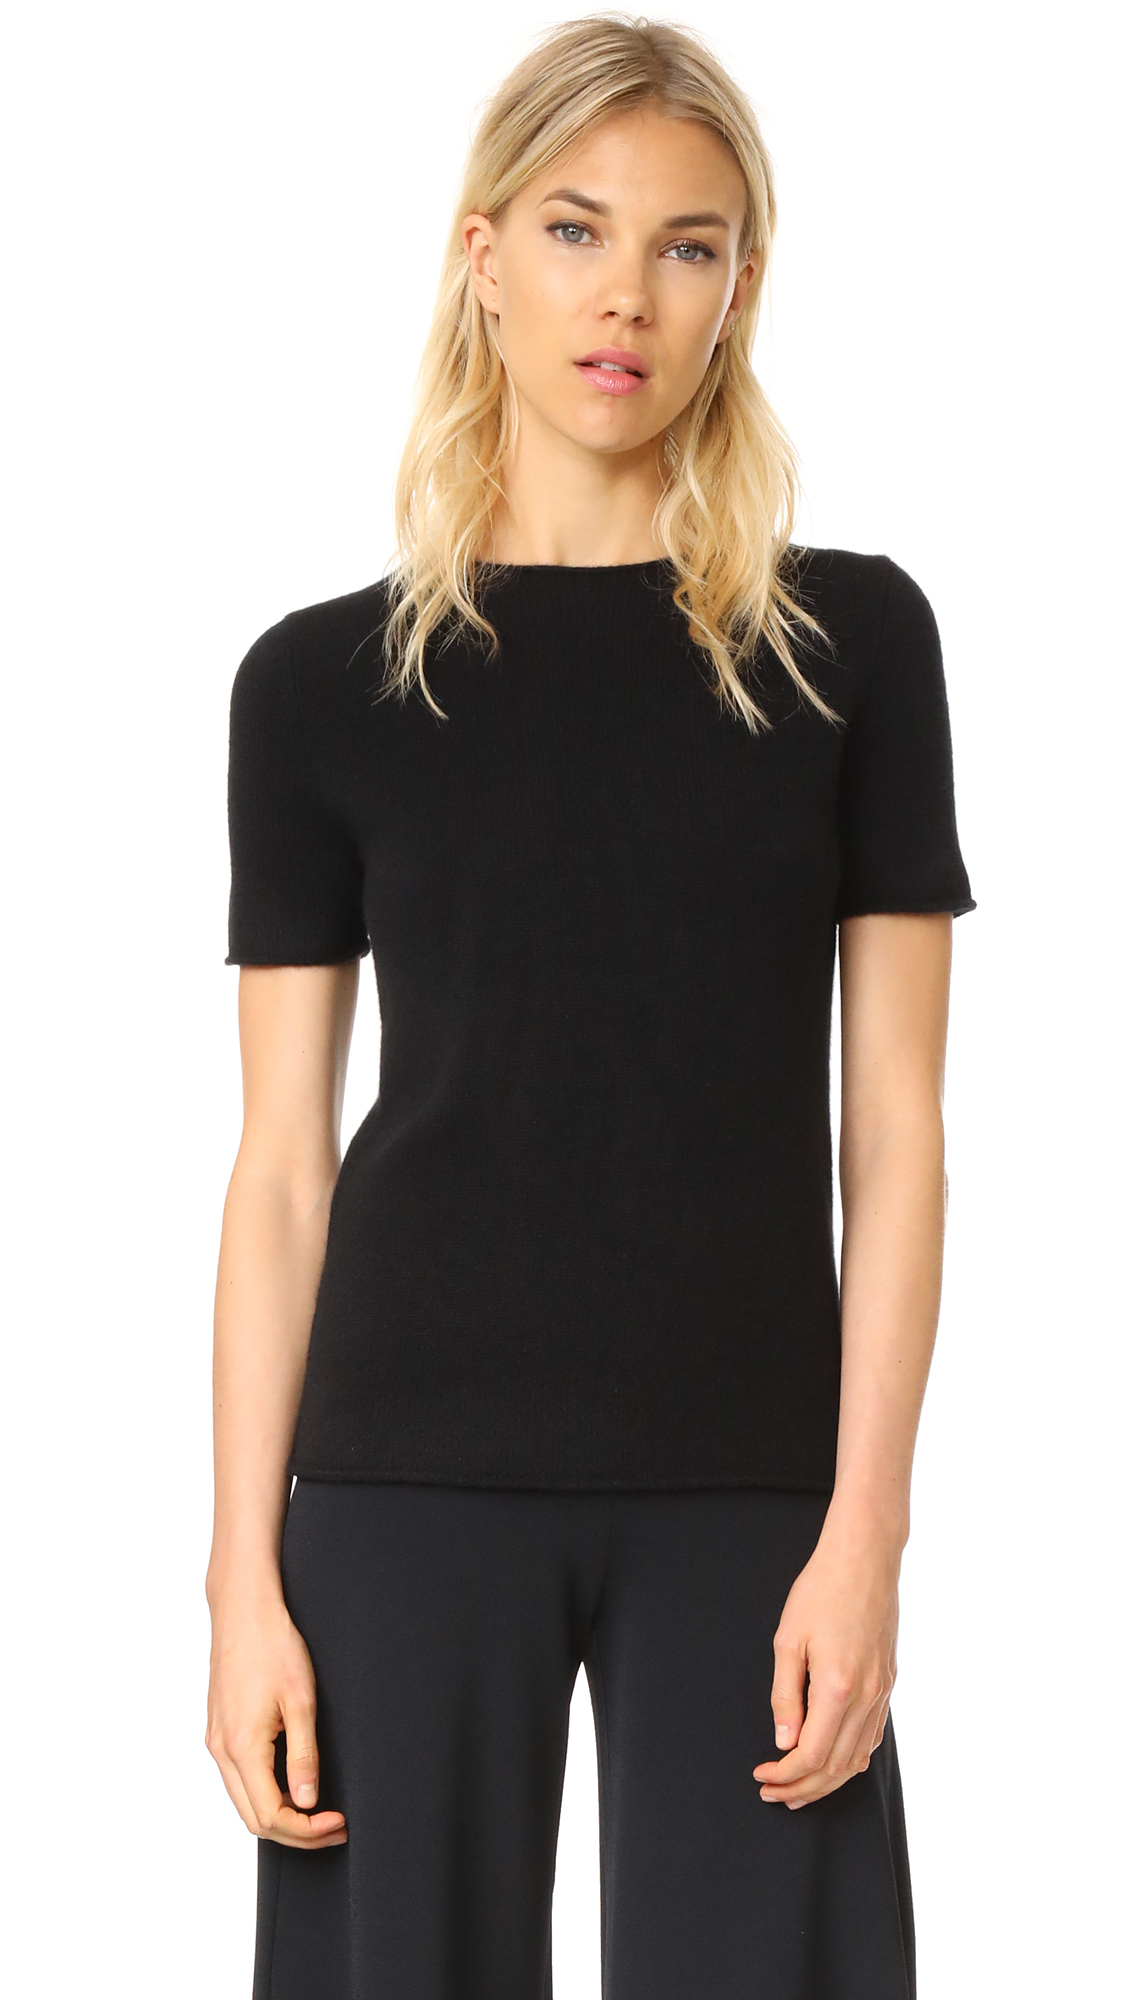 Theory Cashmere Tolleree Short Sleeve Sweater - Black